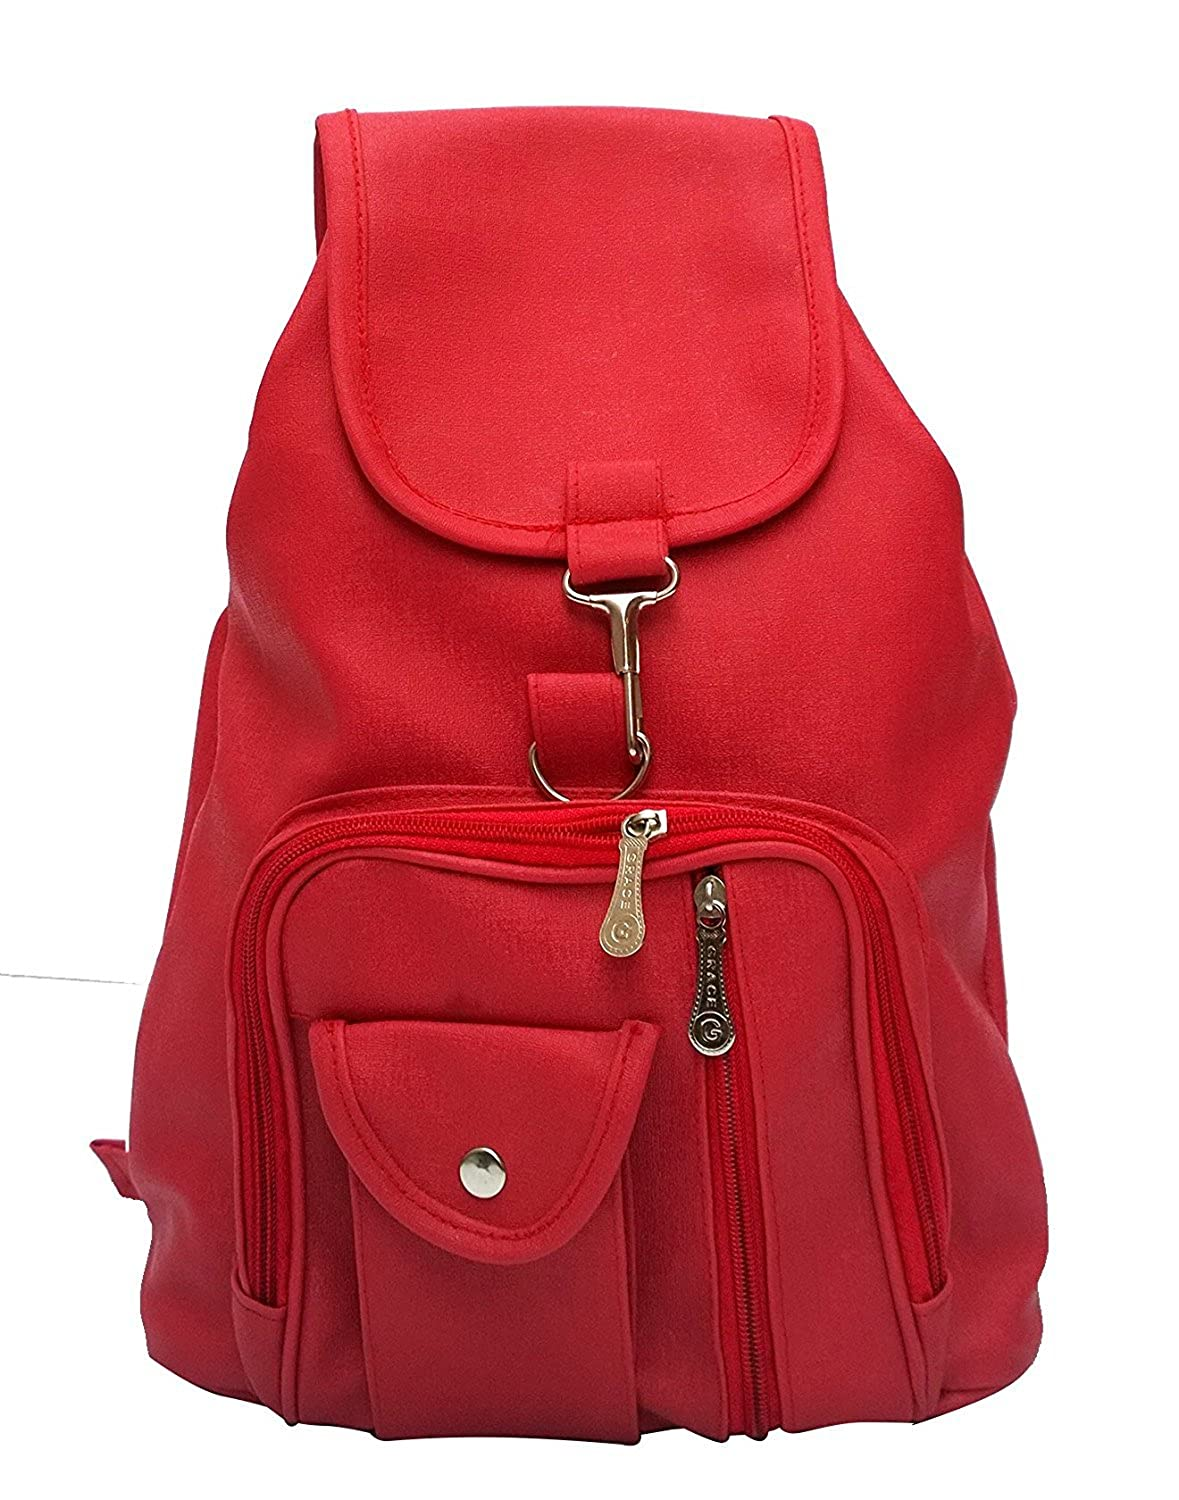 Fashion week Stylish online college bags for lady